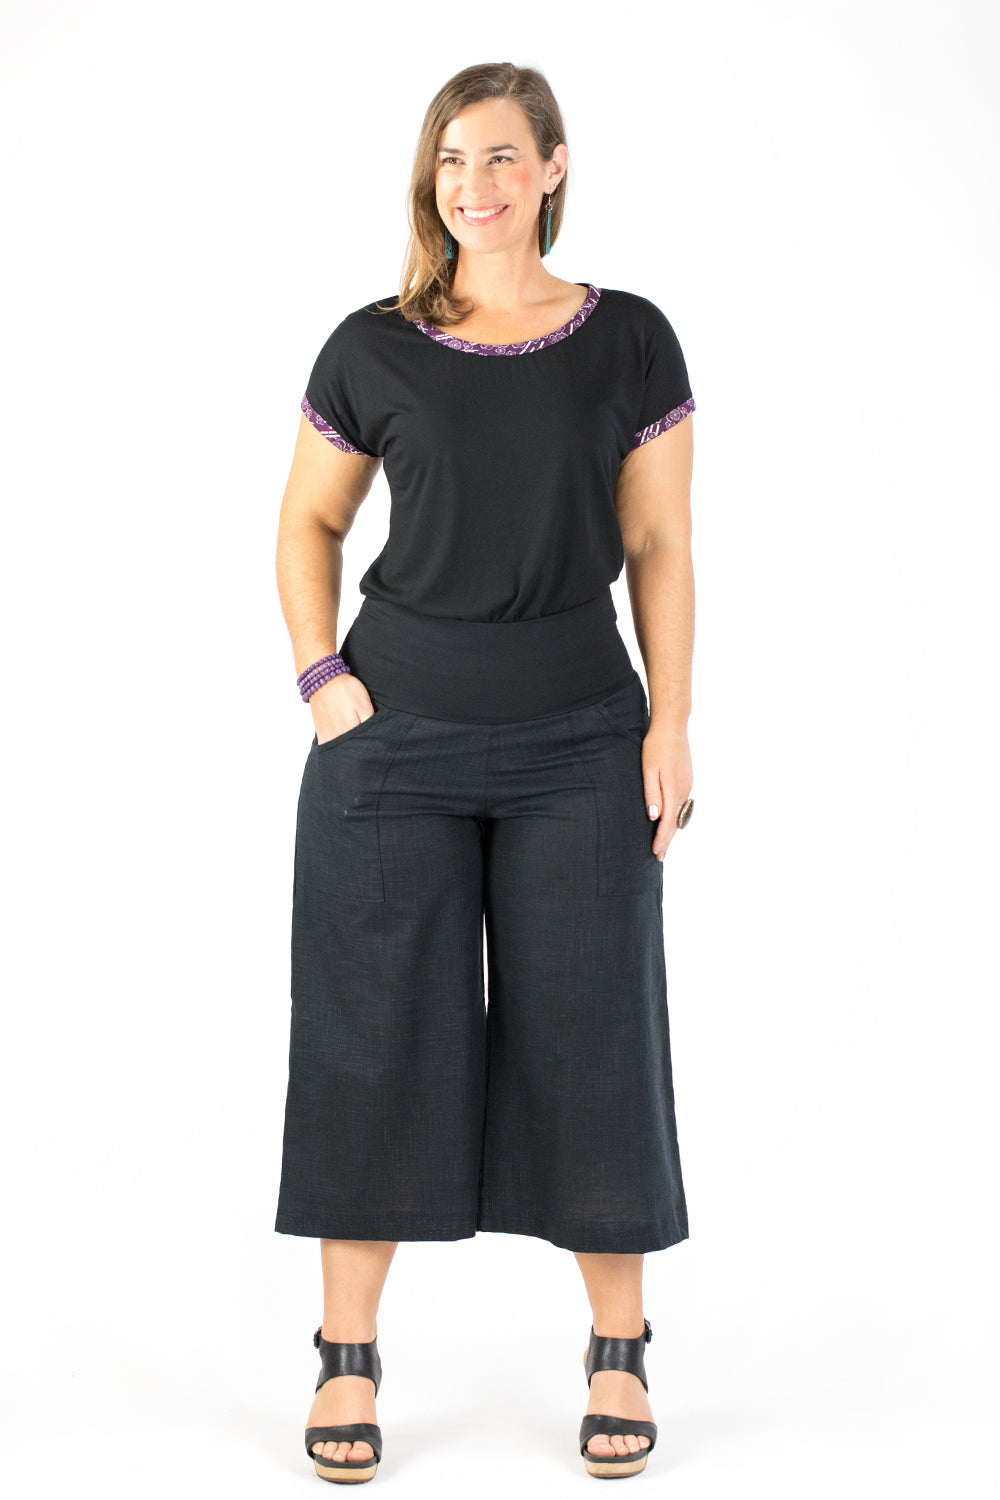 Sidewalk Pants Cropped - Black Japanese Cotton